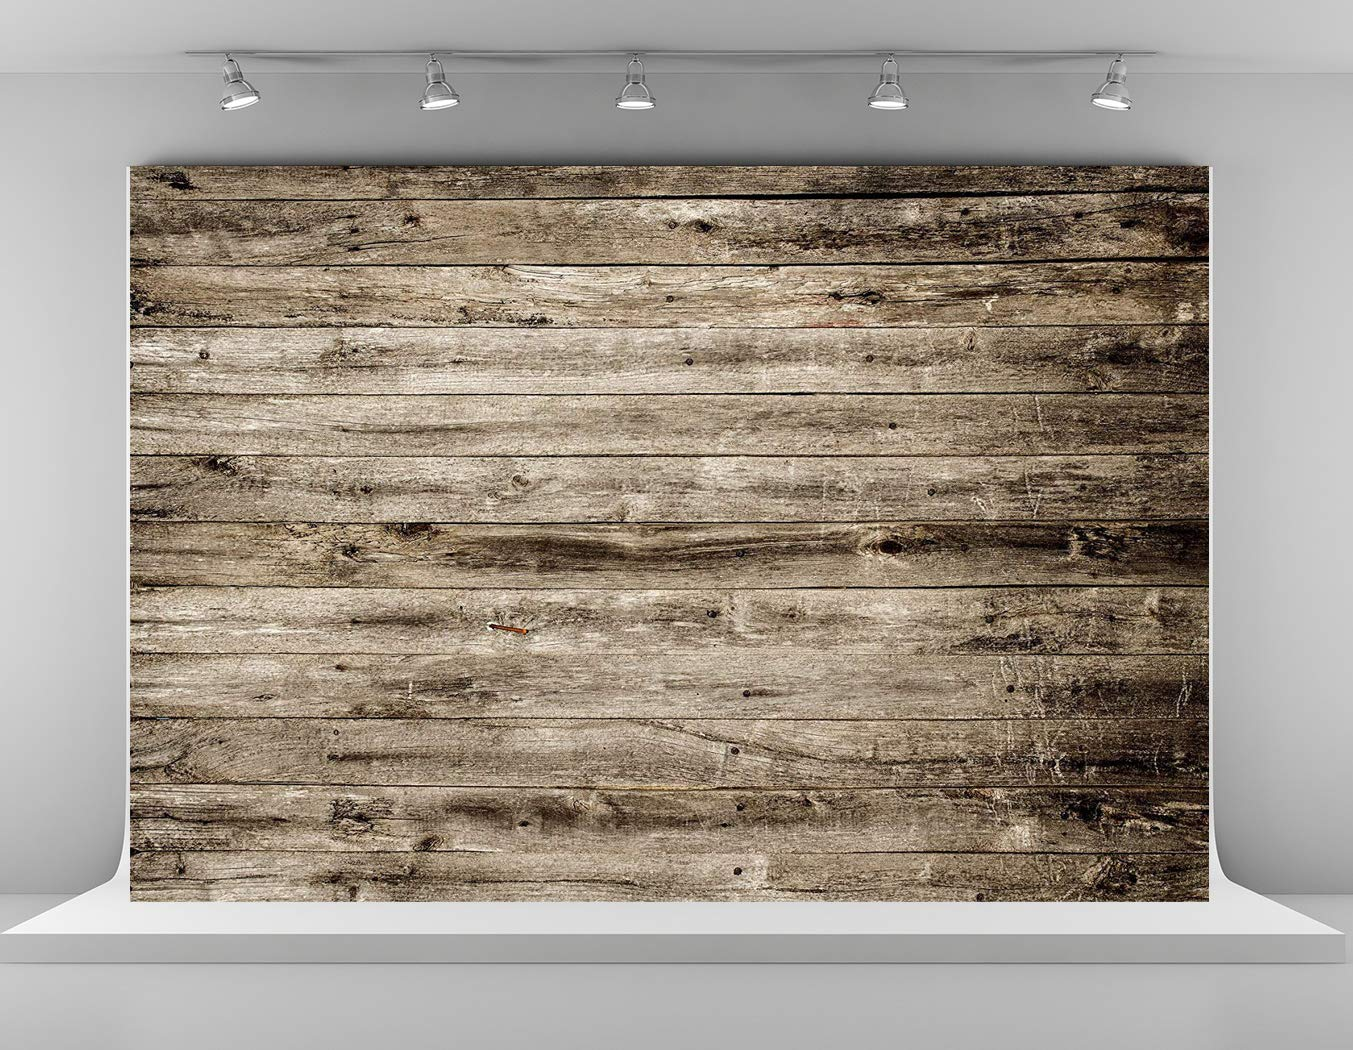 Kate 7x5ft Microfiber Rustic Wood Texture Backdrops for Photoshoot Vintage Wooden Wall Photo Background Adults Kids Portrait Backdrop Props